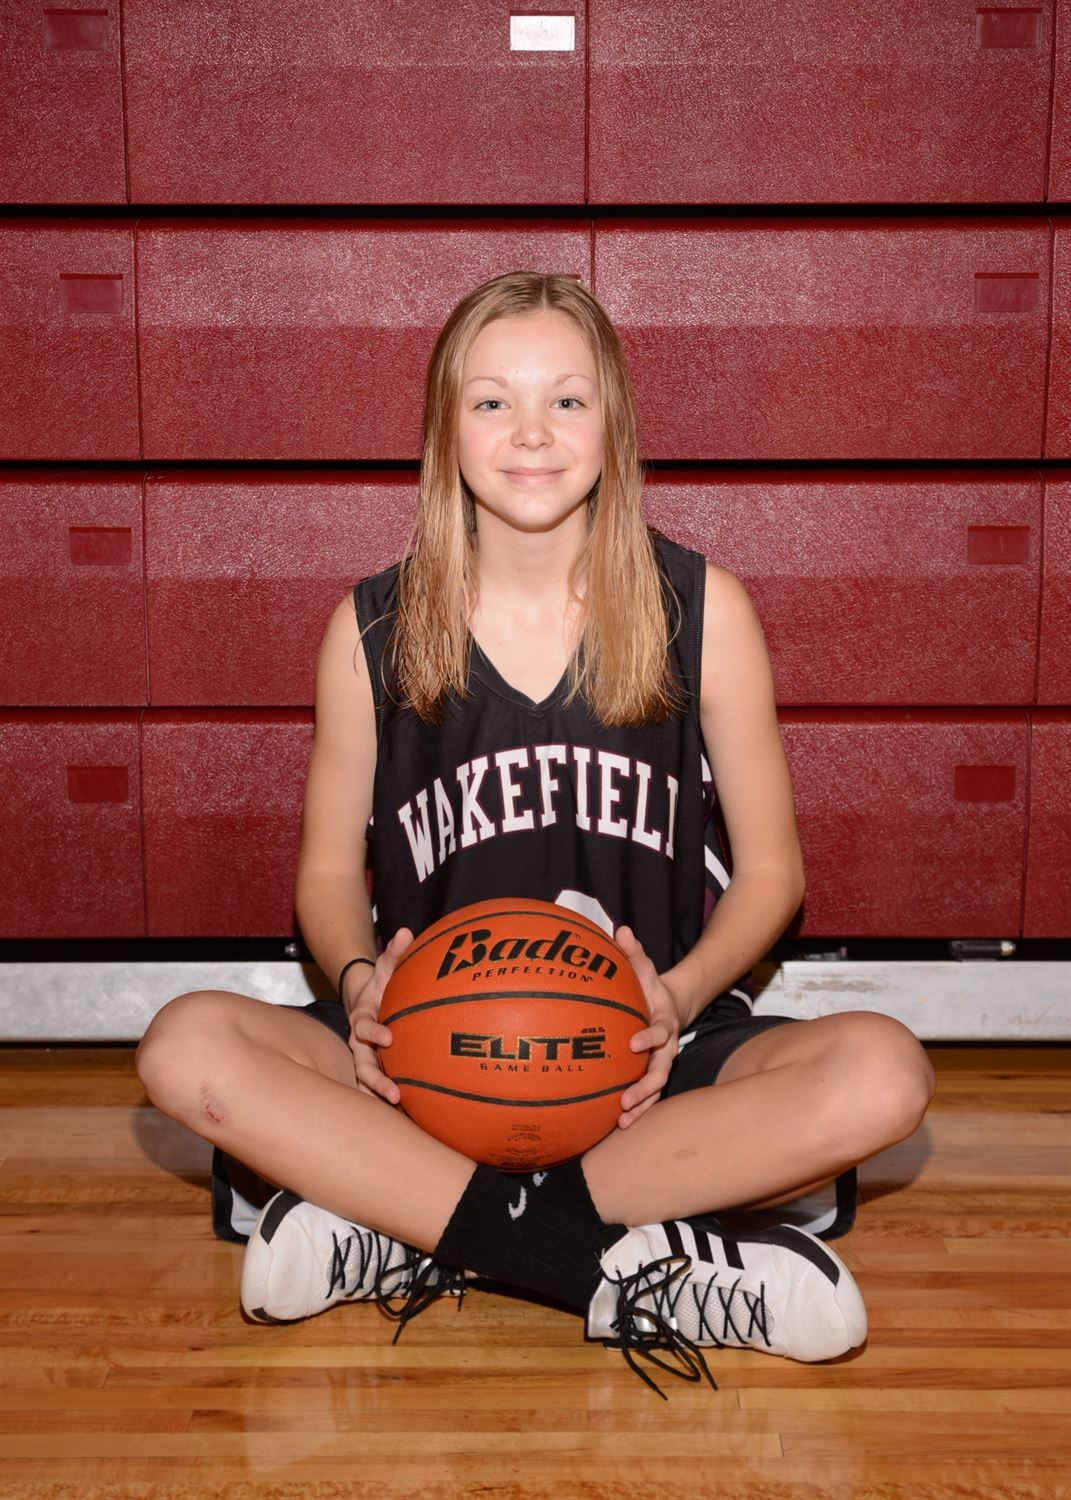 Wakefield High School - Girls Varsity Basketball